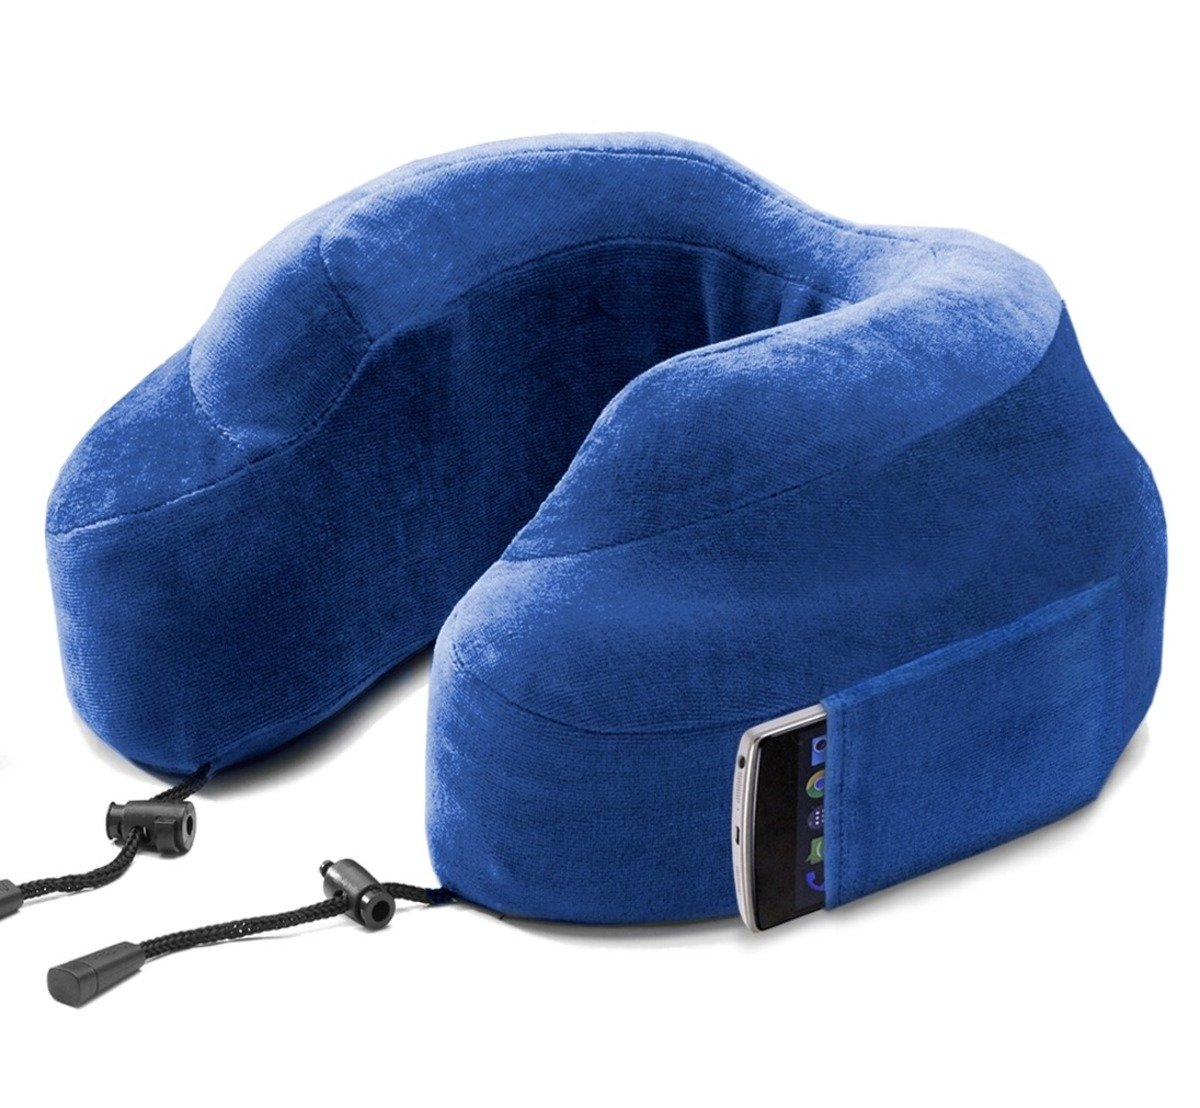 cabeau evolution pillow blue tpep2313 - Cabeau Evolution Pillow